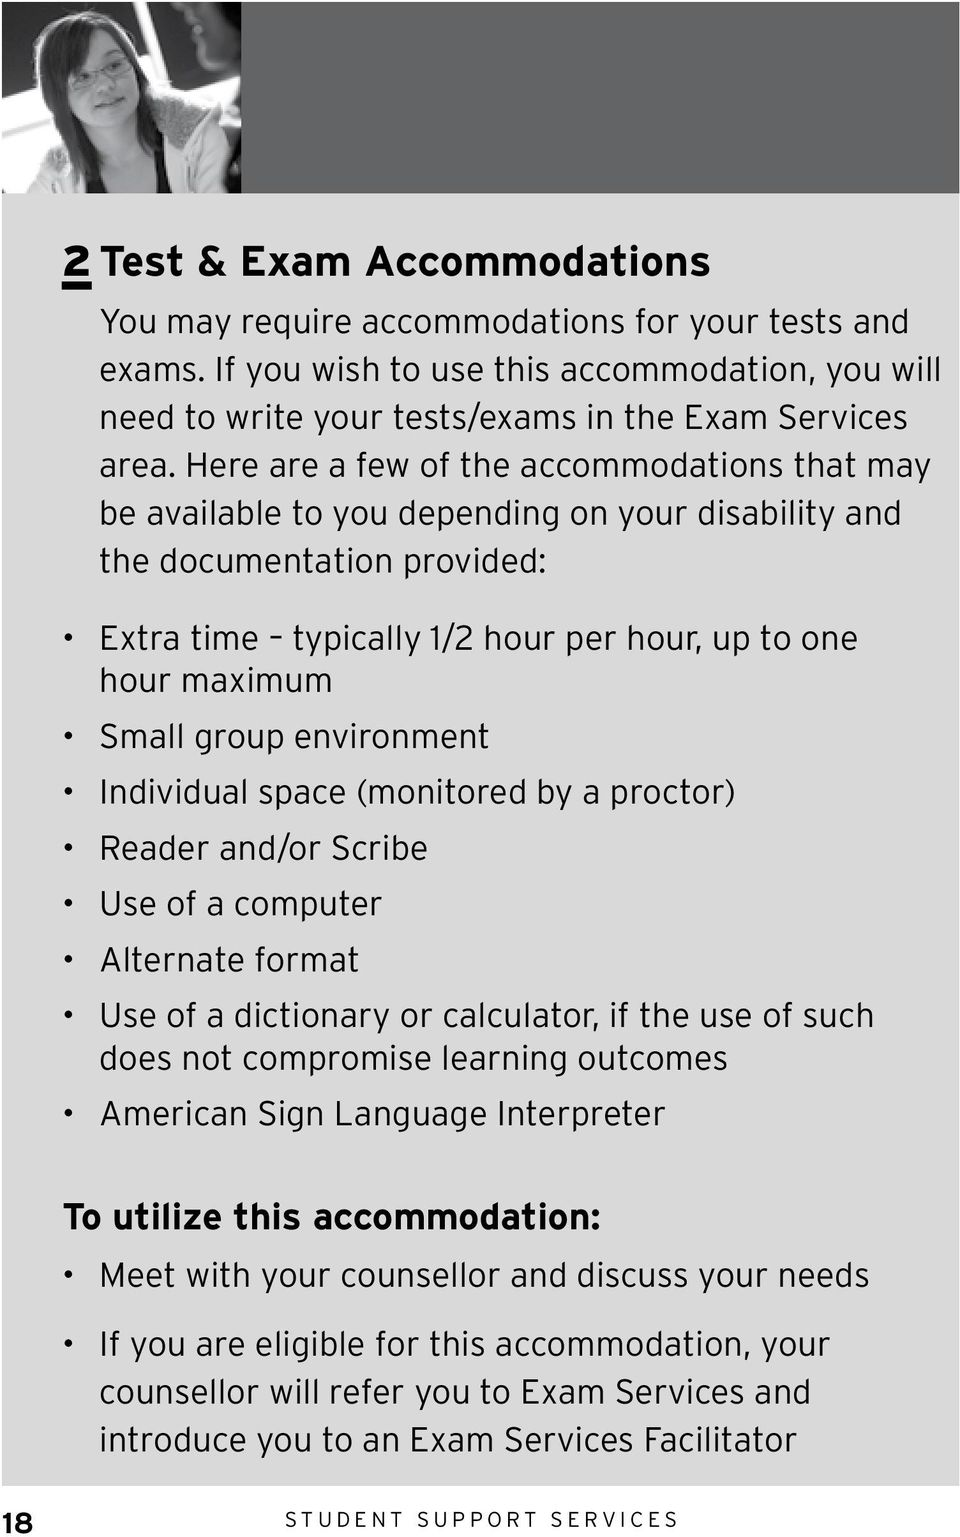 group environment Individual space (monitored by a proctor) Reader and/or Scribe Use of a computer Alternate format Use of a dictionary or calculator, if the use of such does not compromise learning